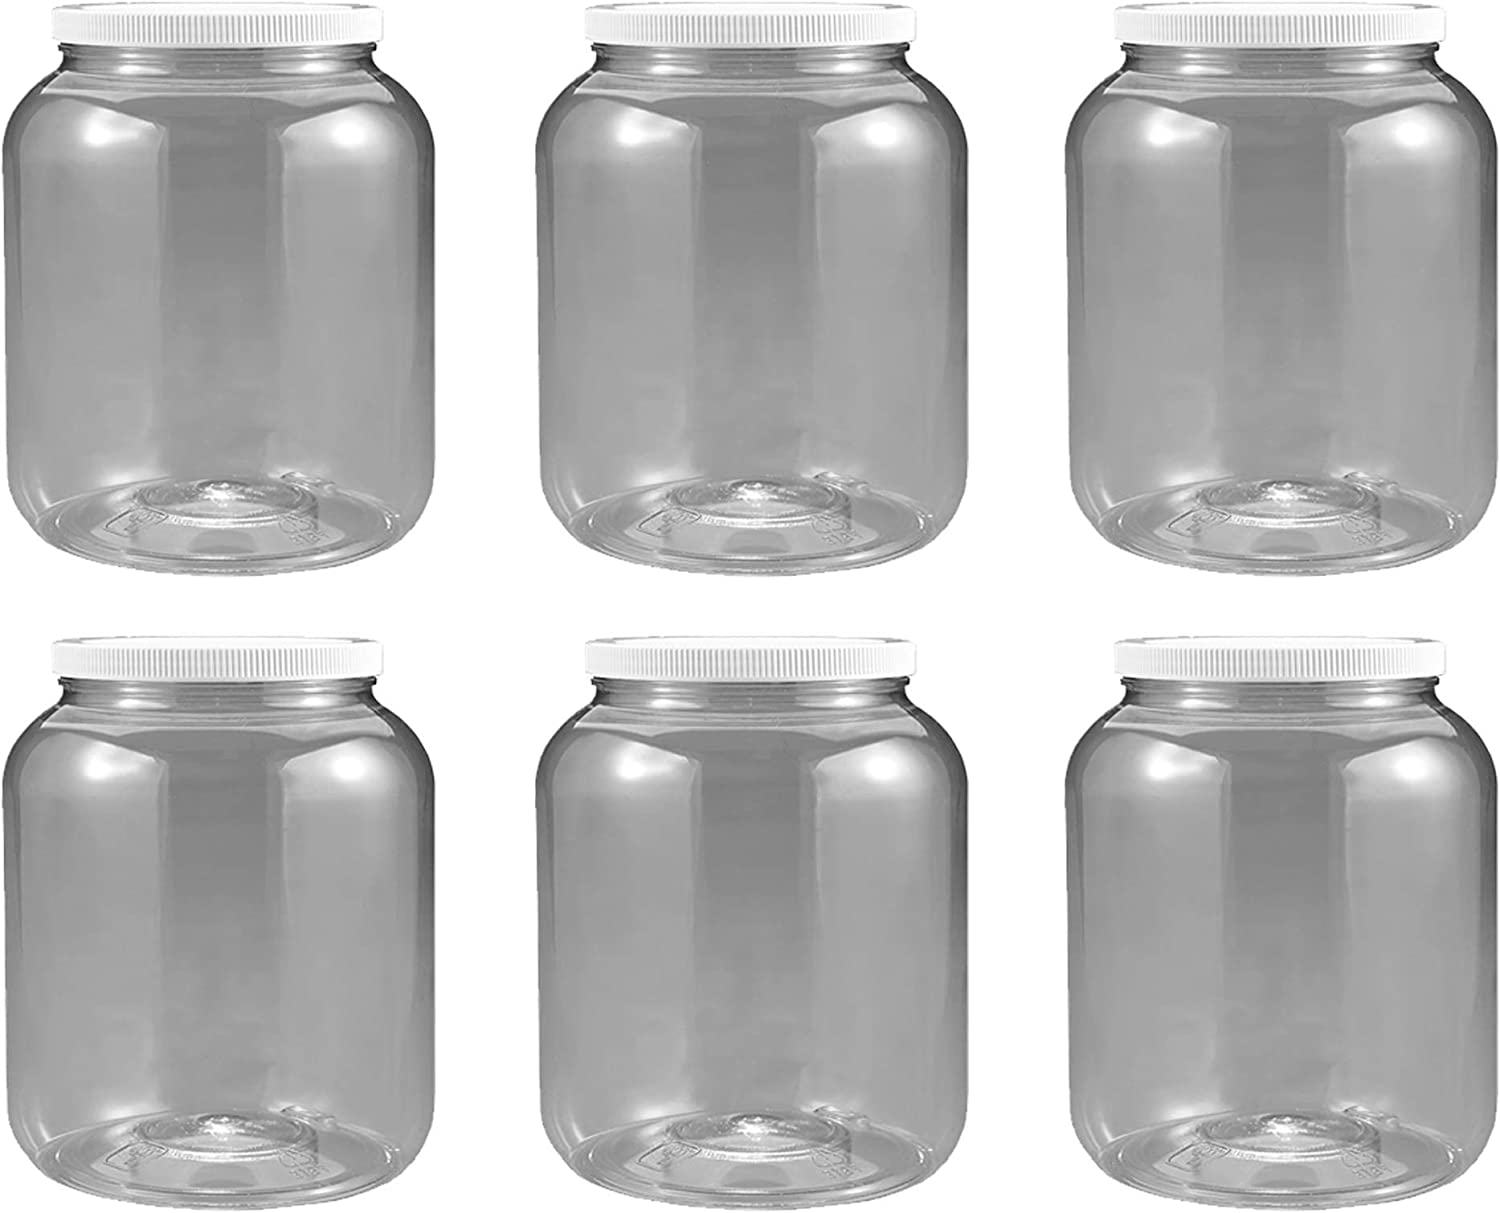 6 pack 1/2 Gallon 2 Quart Plastic Wide Mouth Jar with Pressurized Seal White screw on cap lid and Container Shatter-Proof BEST American BPA Free crystal clear PET (6)